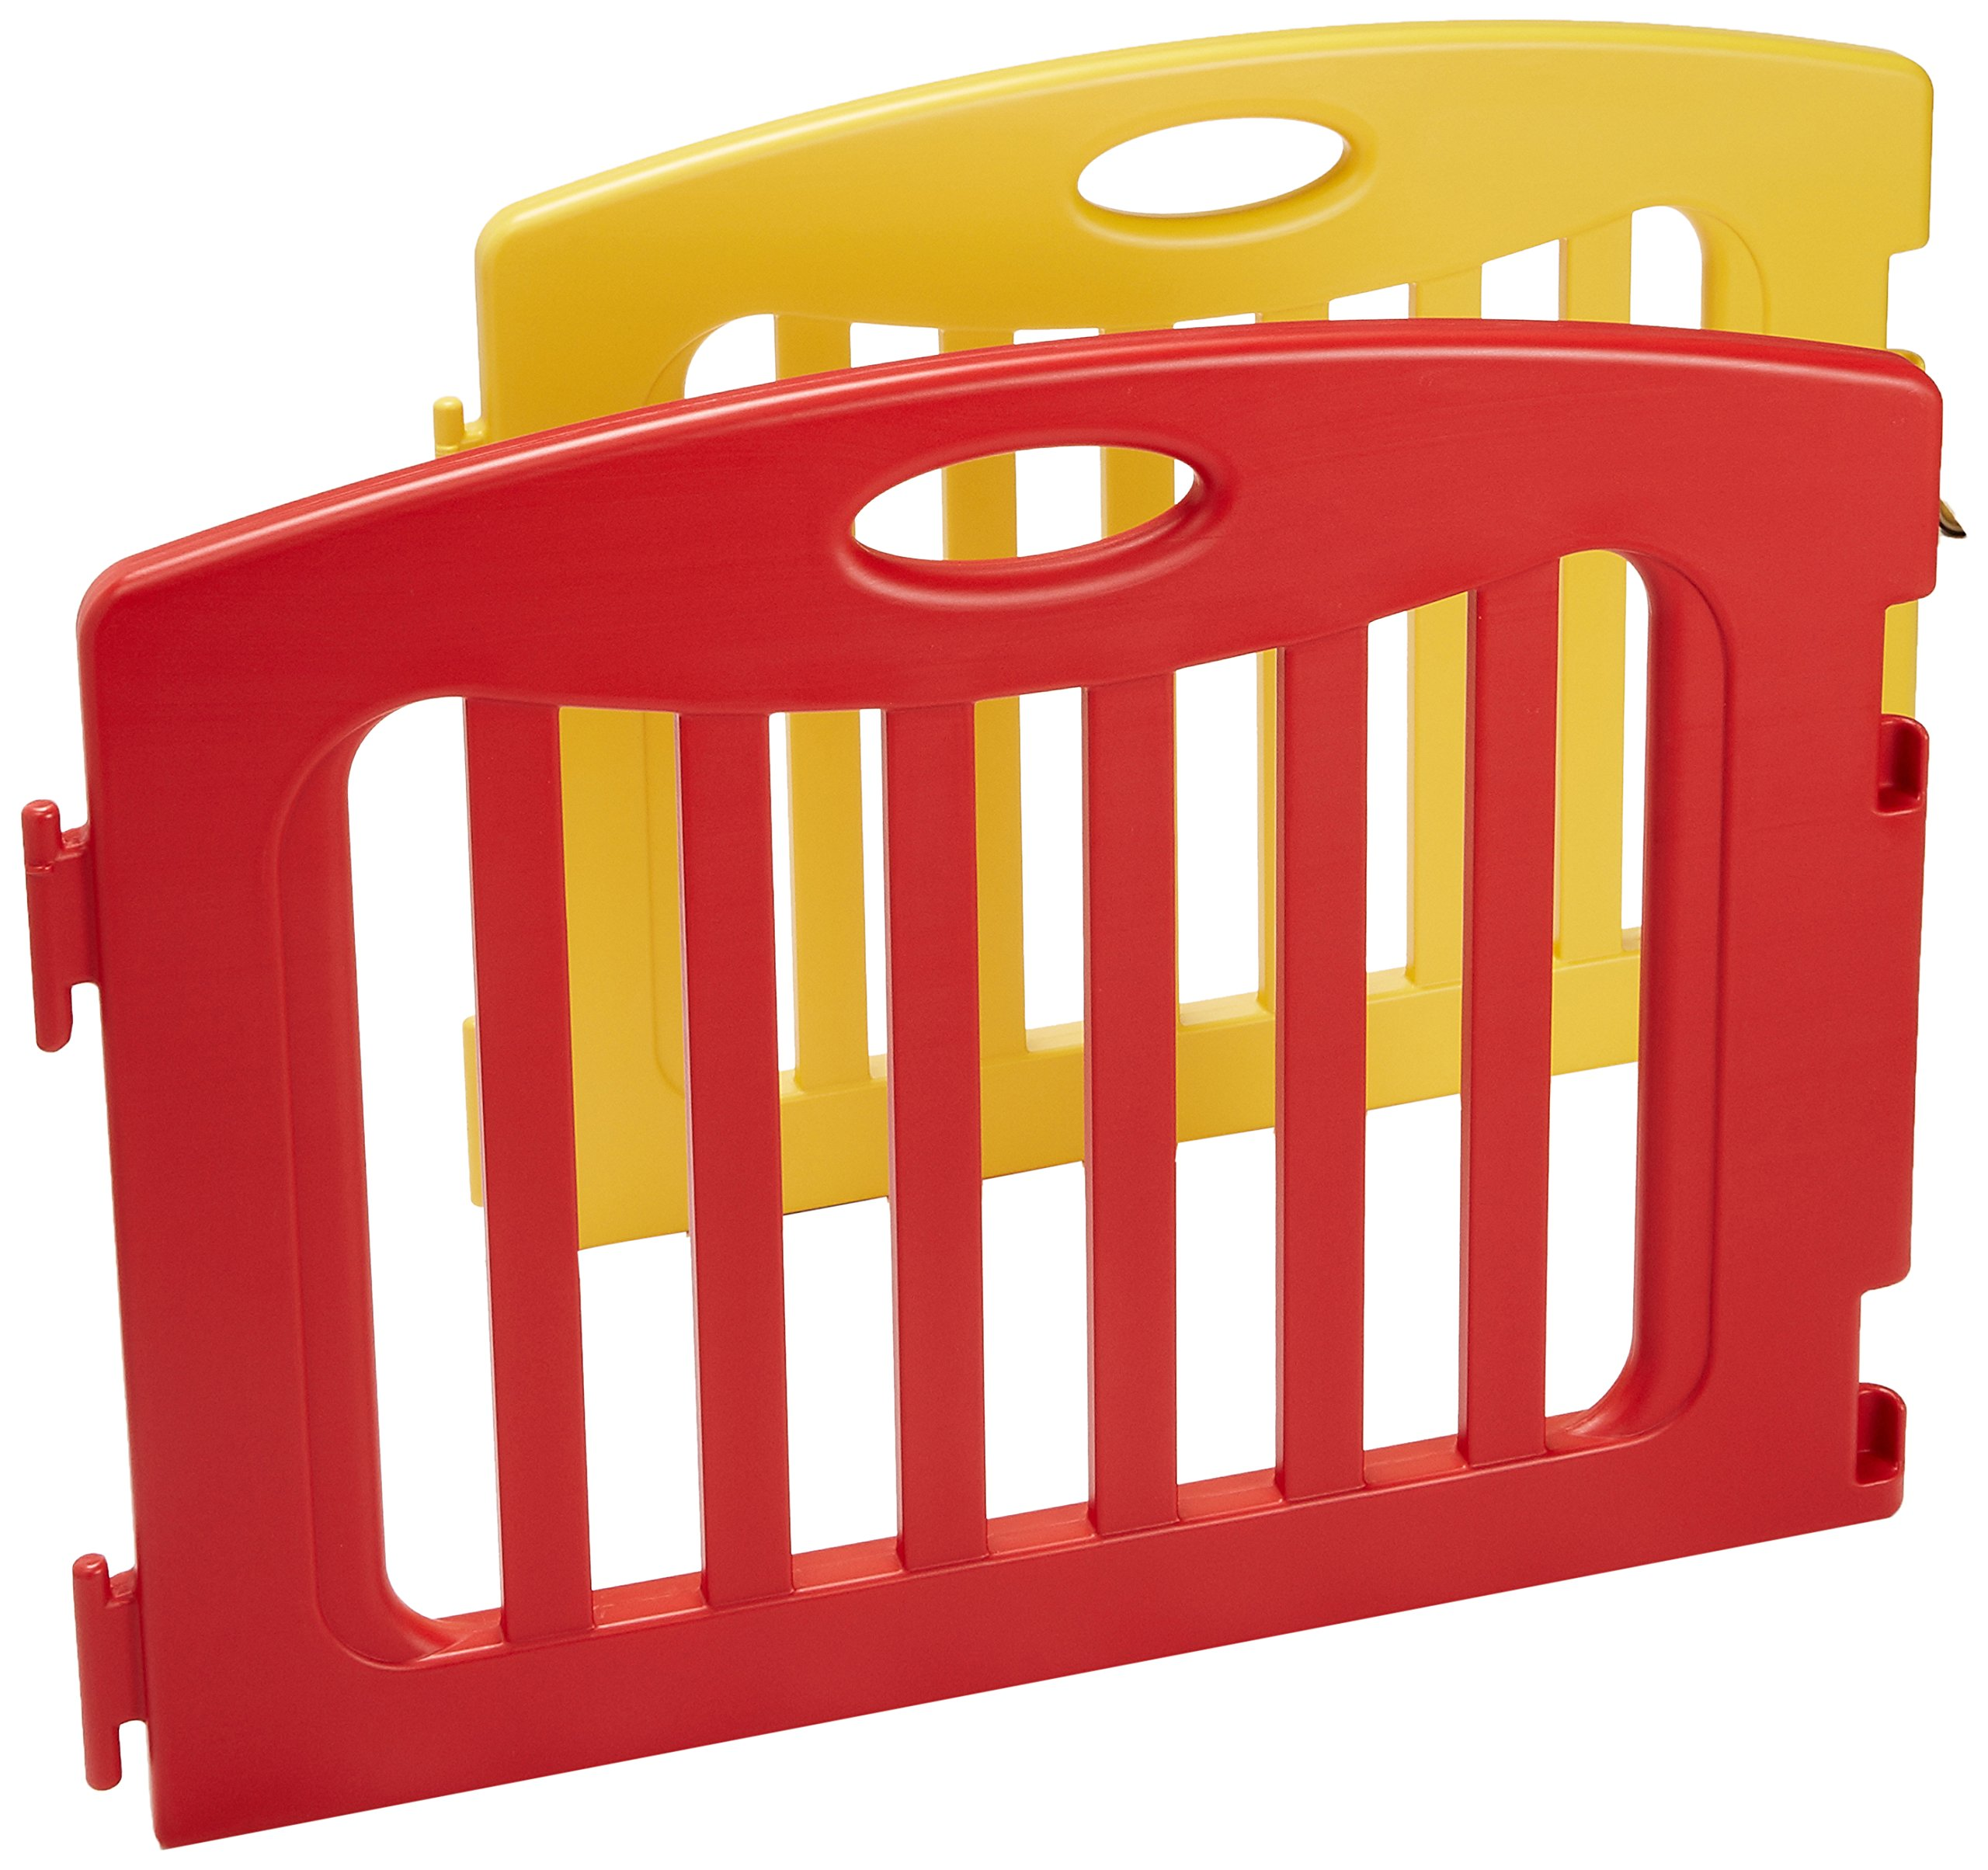 Japan childcare musical Kids Land Square extension panel extended the time of width 116 ~ depth 196 ~ height 61cm 5010011001 6 months to 3 years and a half subject Square dedicated extension panel